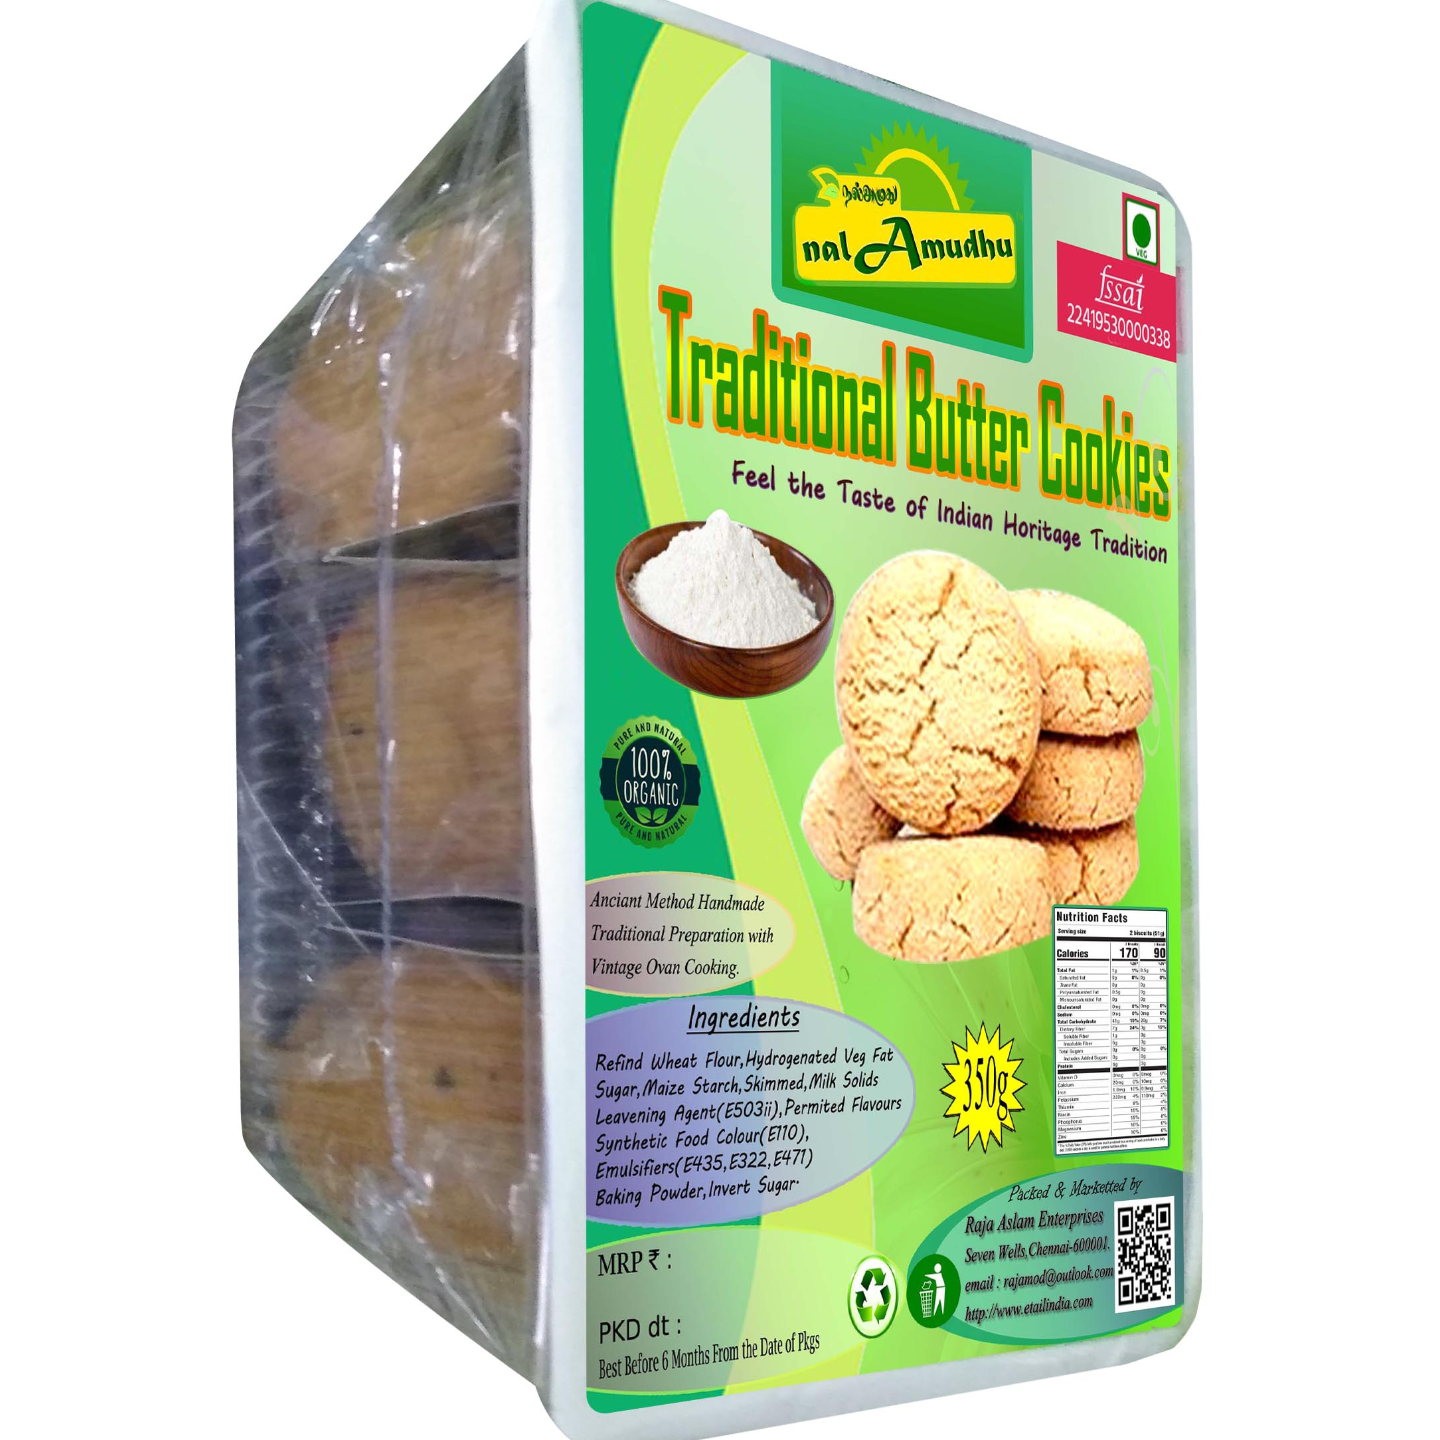 nalAmudhu Traditional Butter Cookies